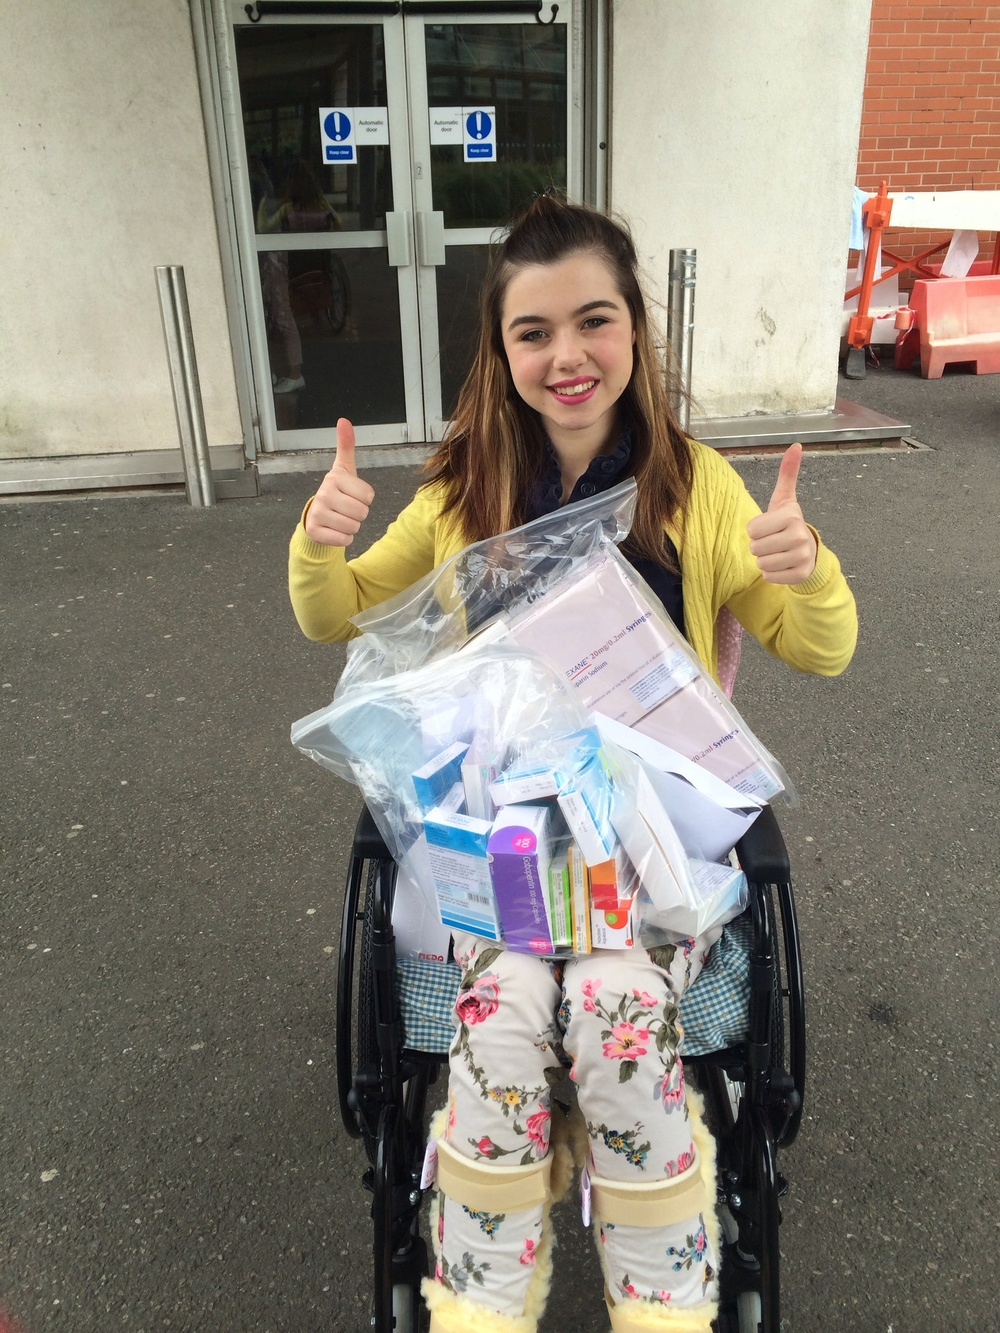 Chloe's discharge from hospital after a nearly seven month stay.